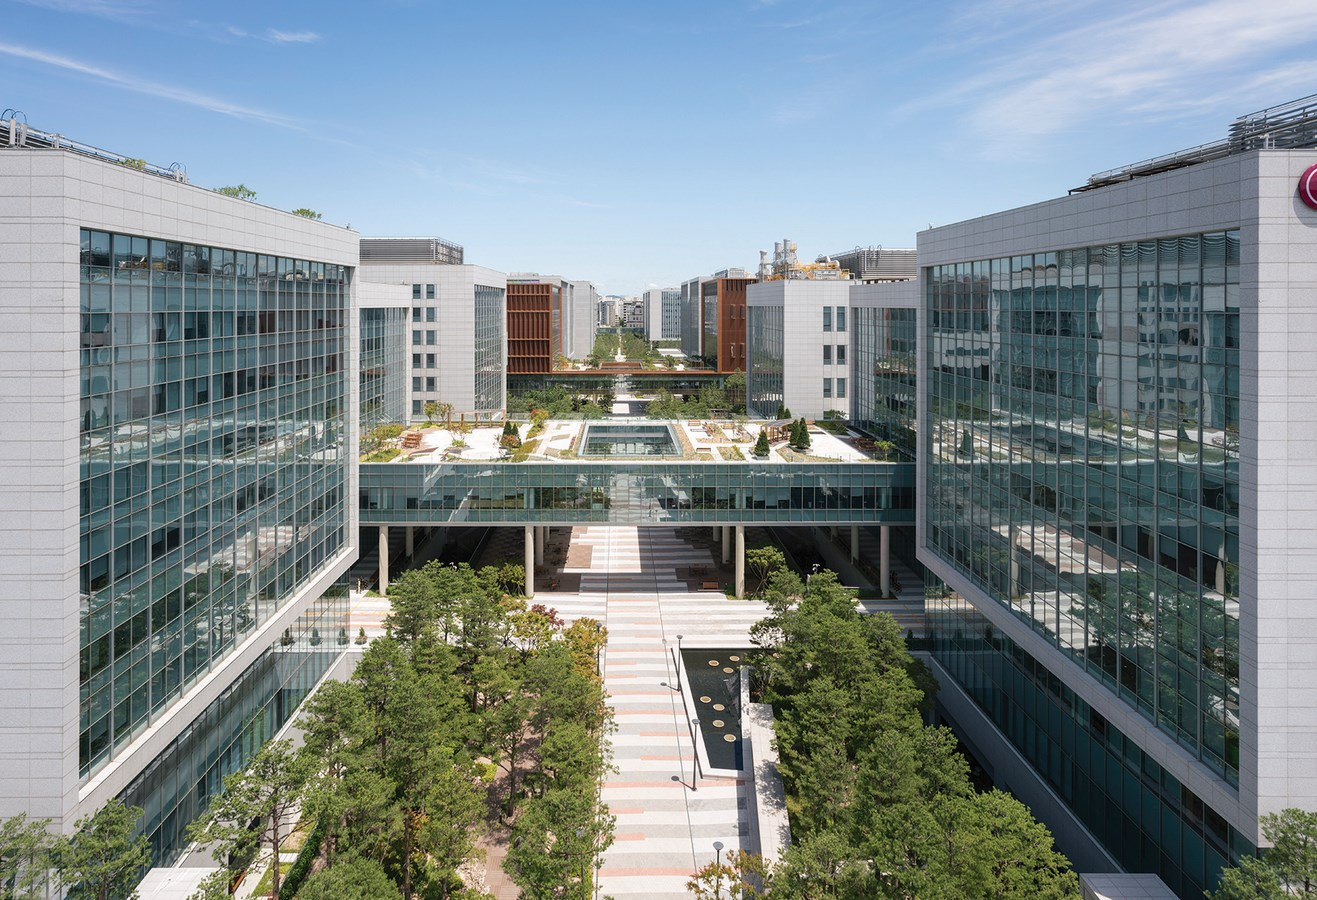 15 Projects by HOK Architects every Architect should know about - LG Science Park